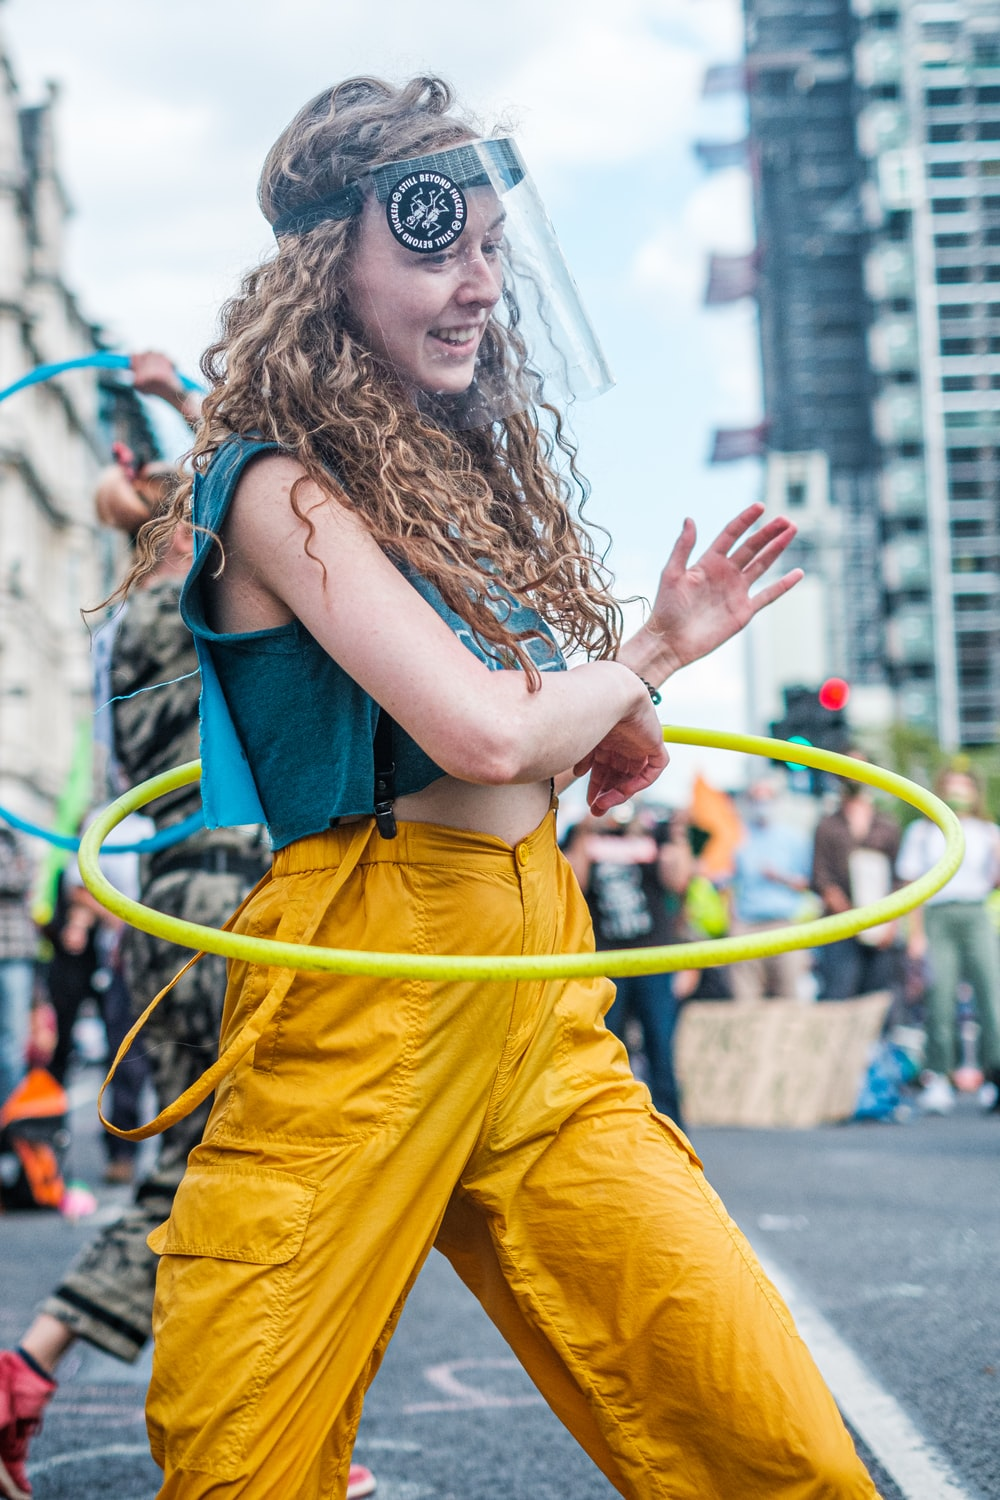 woman in blue tank top and yellow pants holding yellow rope